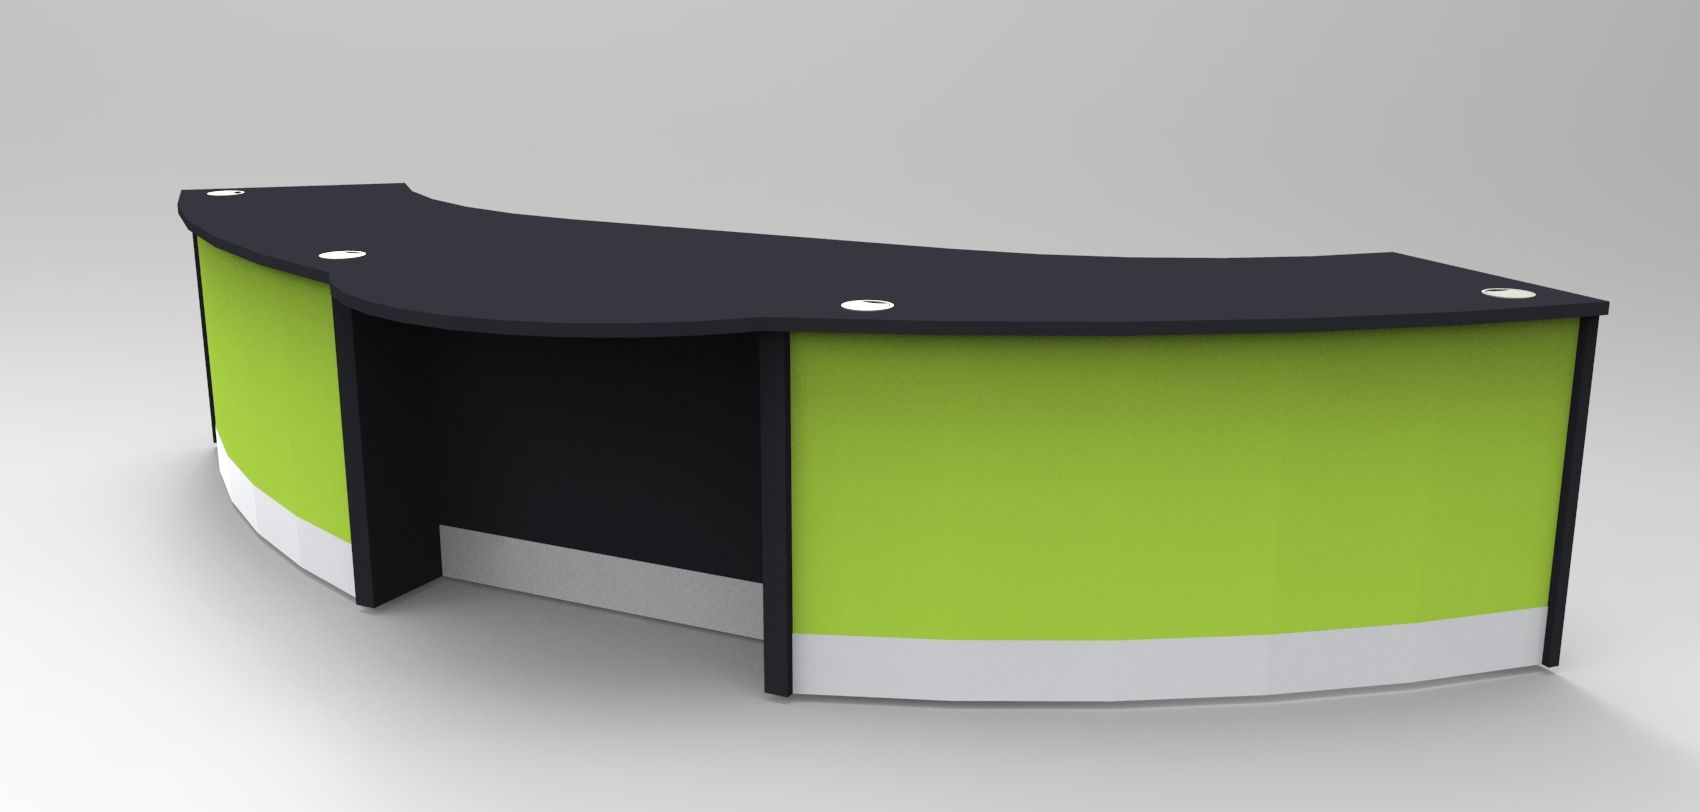 Aero Dda Reception Desk Finished In Black With Lime Green